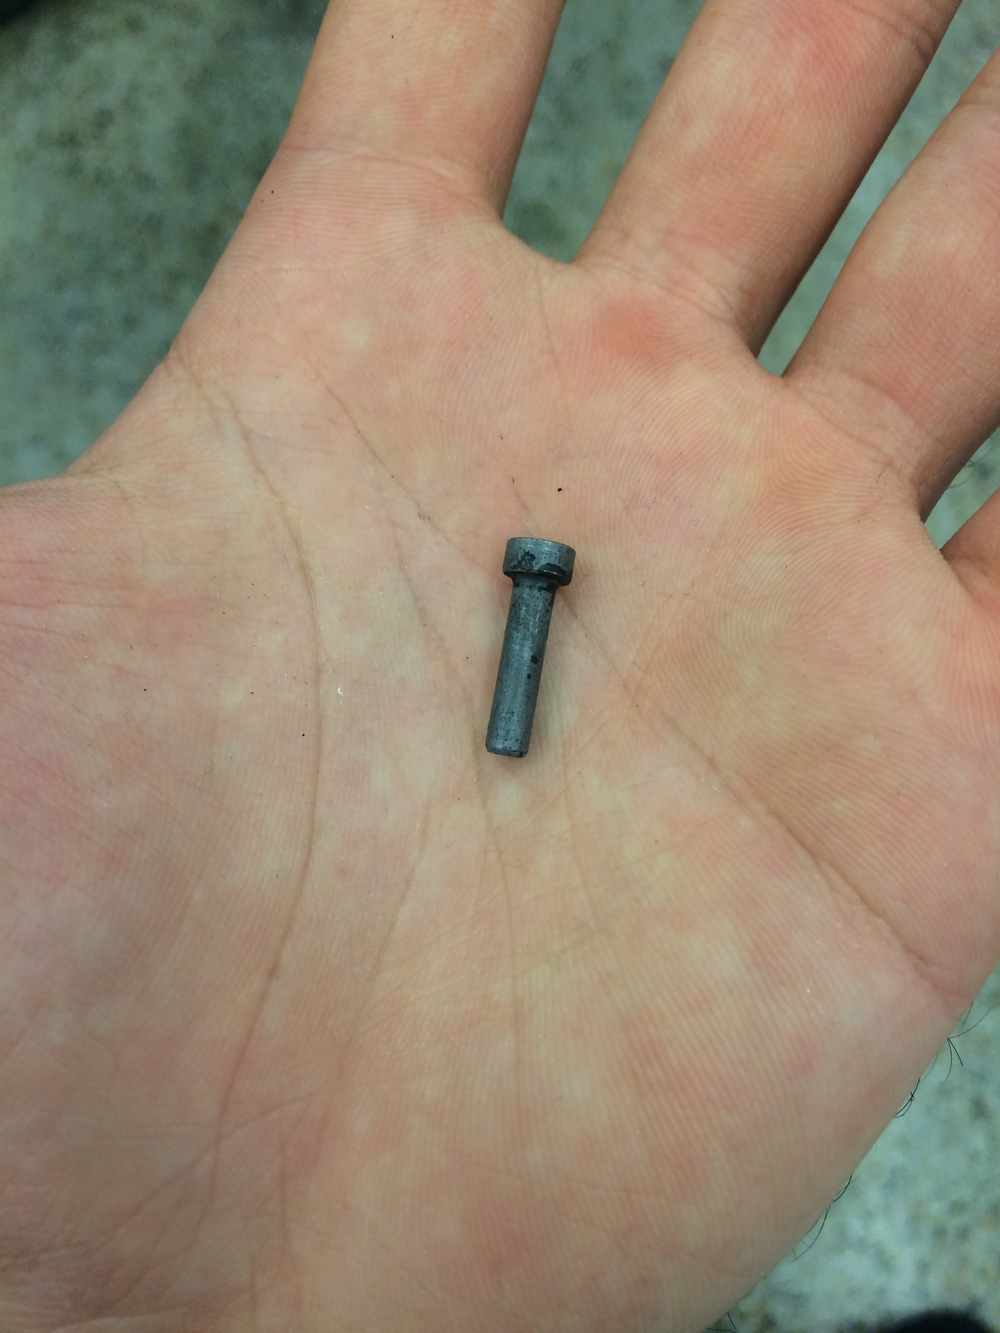 The hardened pin